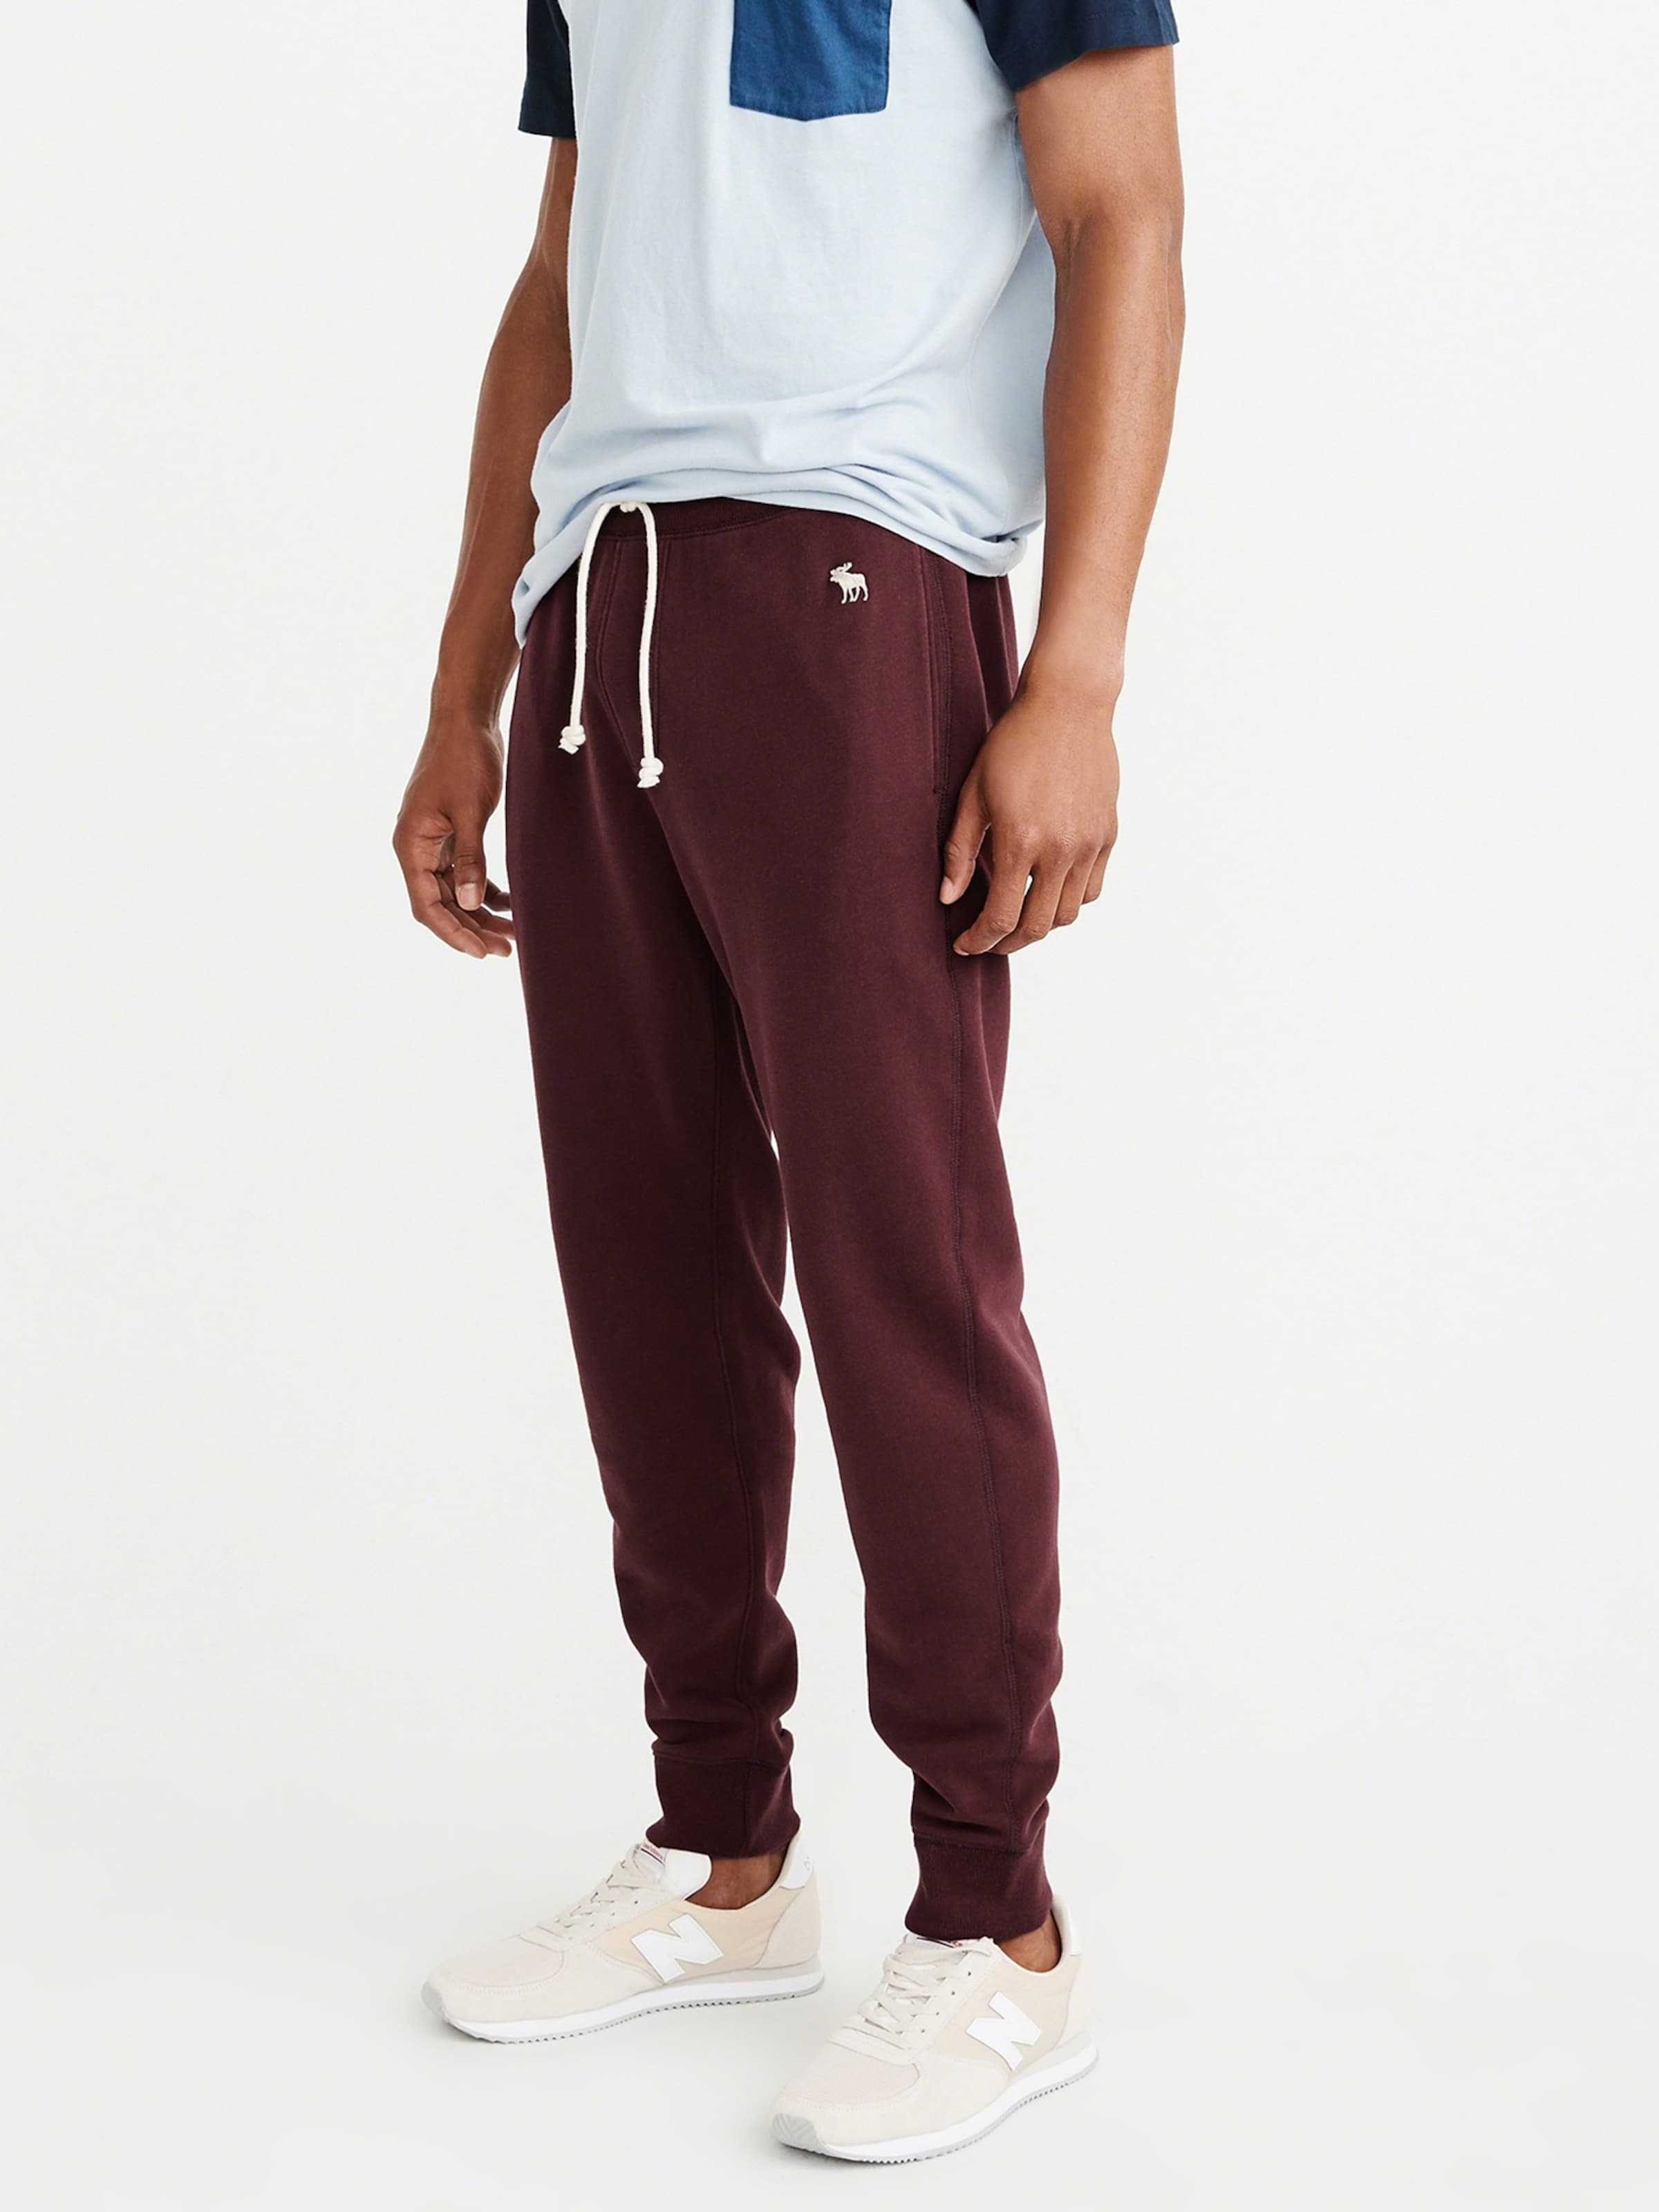 Abercrombieamp; Jogger 4cc' Global In Burgunder Fitch 'essential Dtc Hose SqUzGMLVp